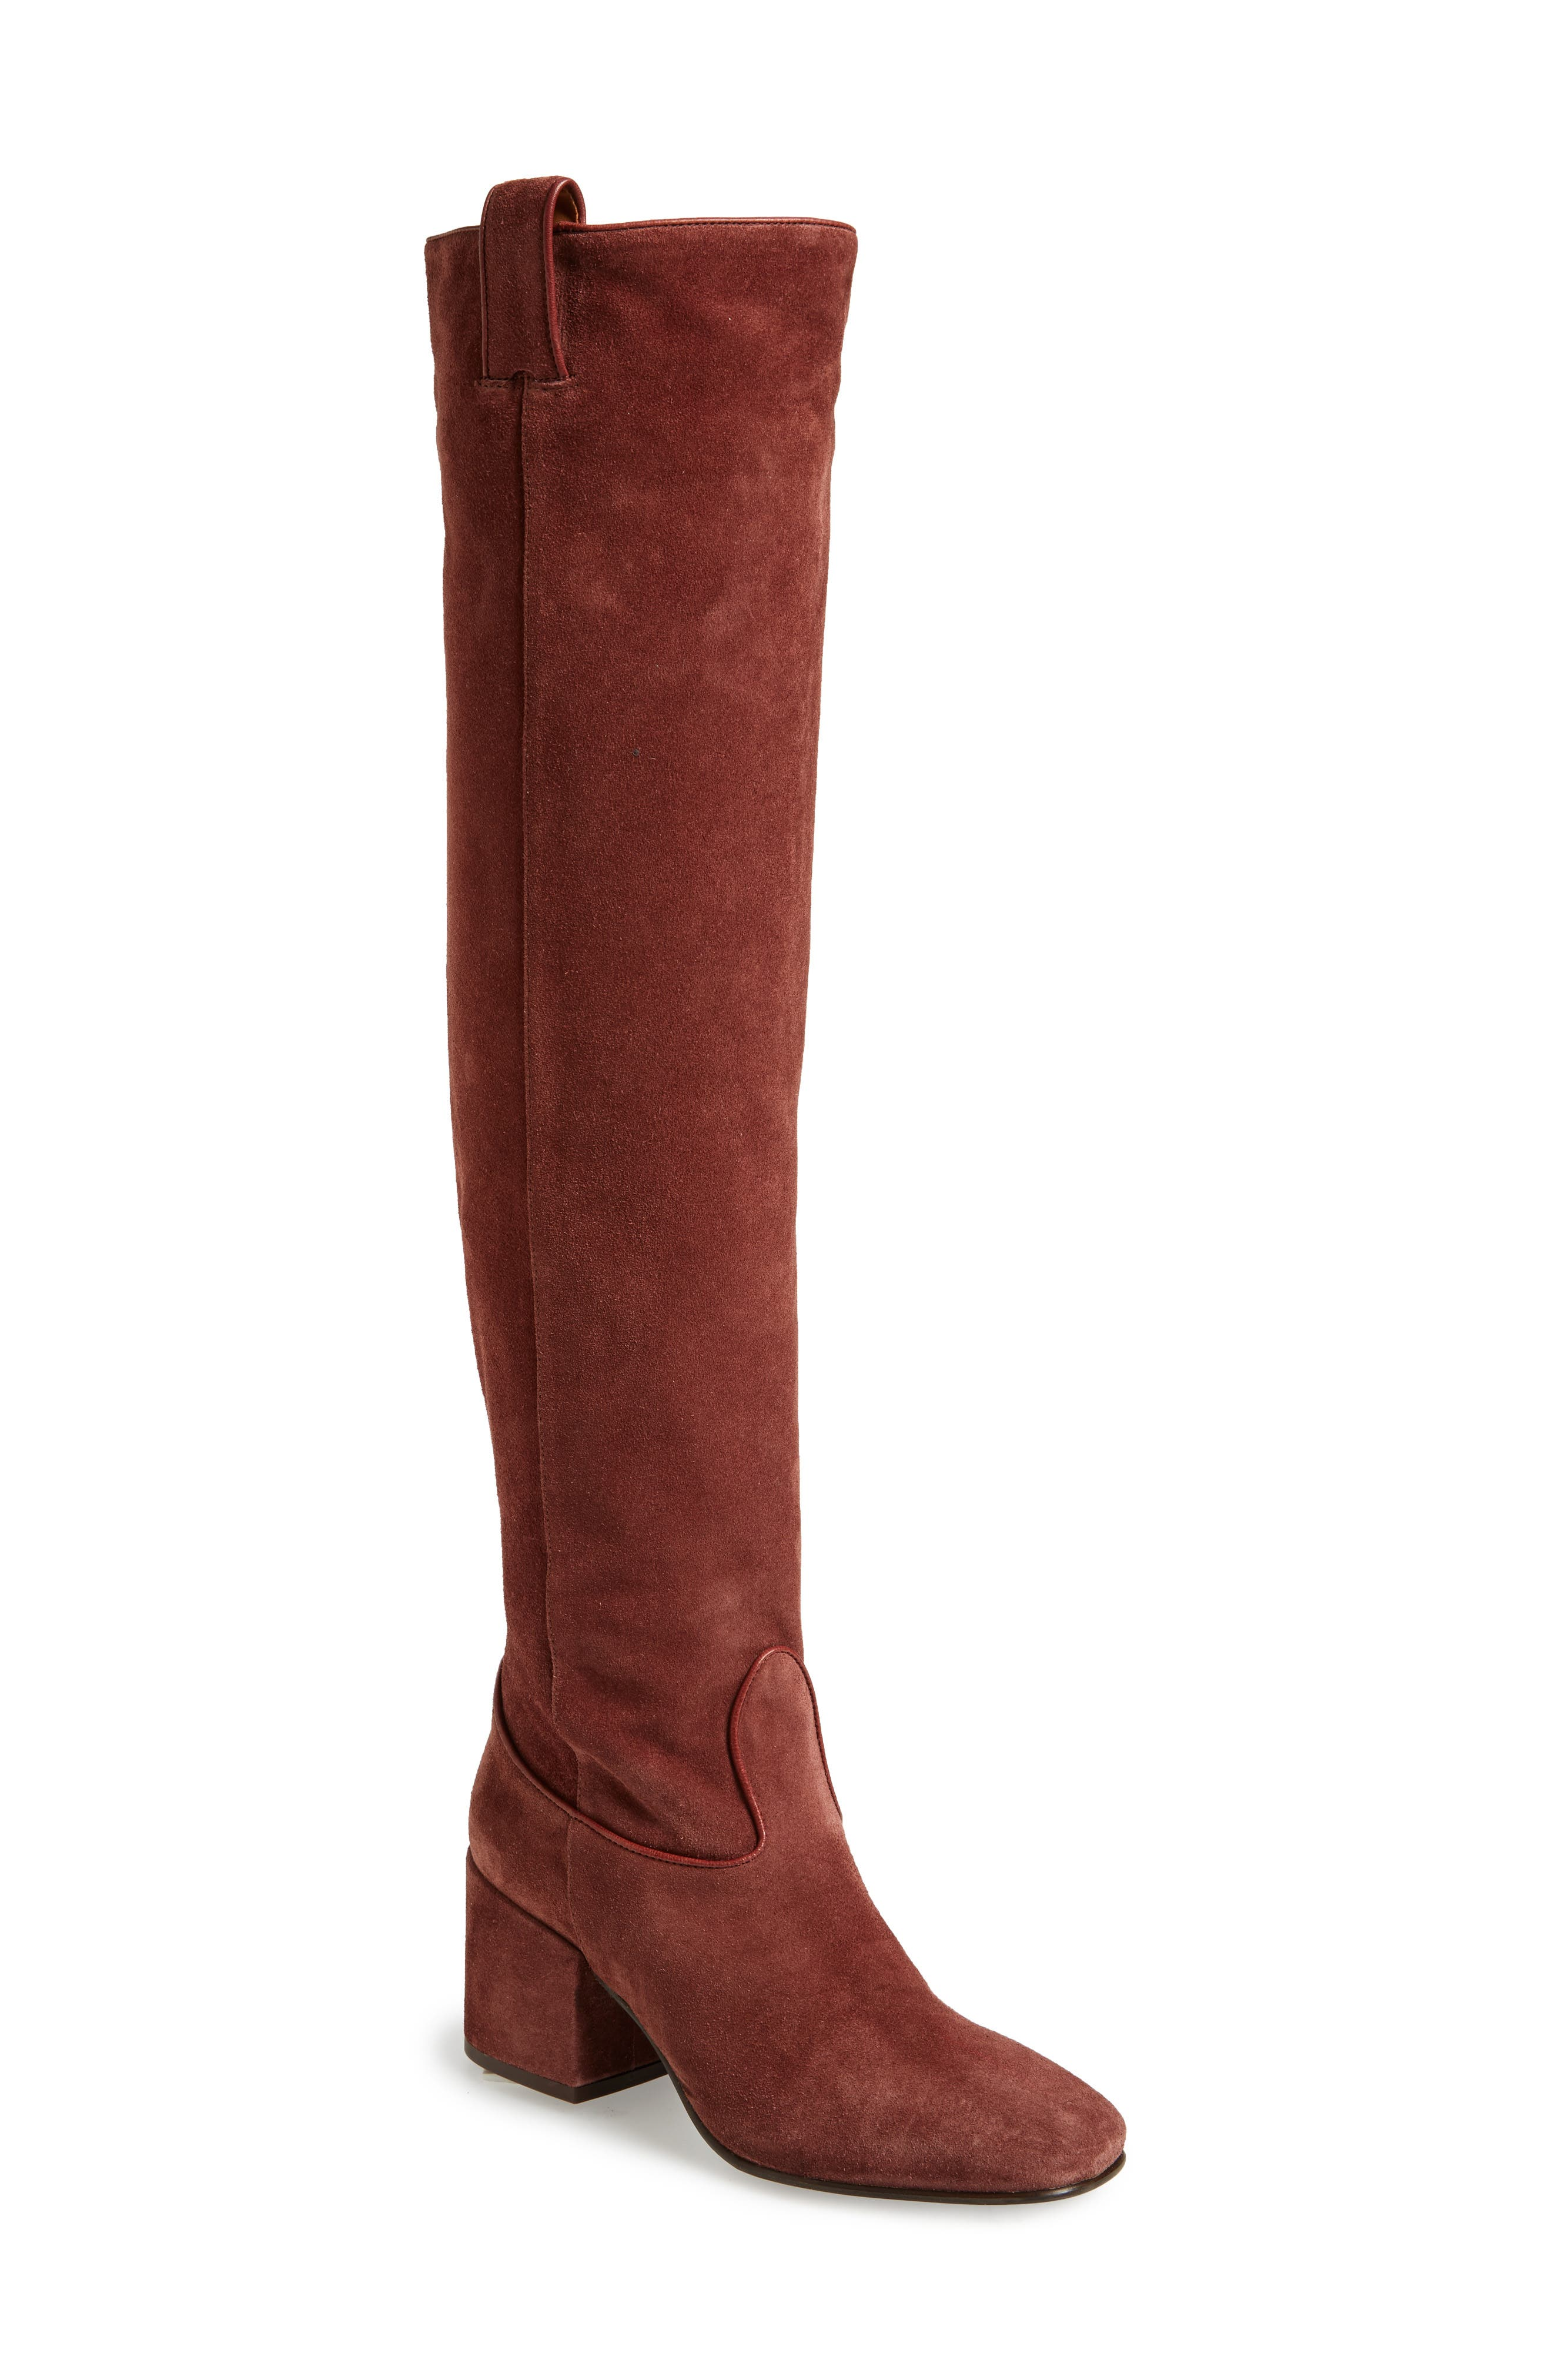 Delia Over the Knee Boot,                             Main thumbnail 1, color,                             Mogano